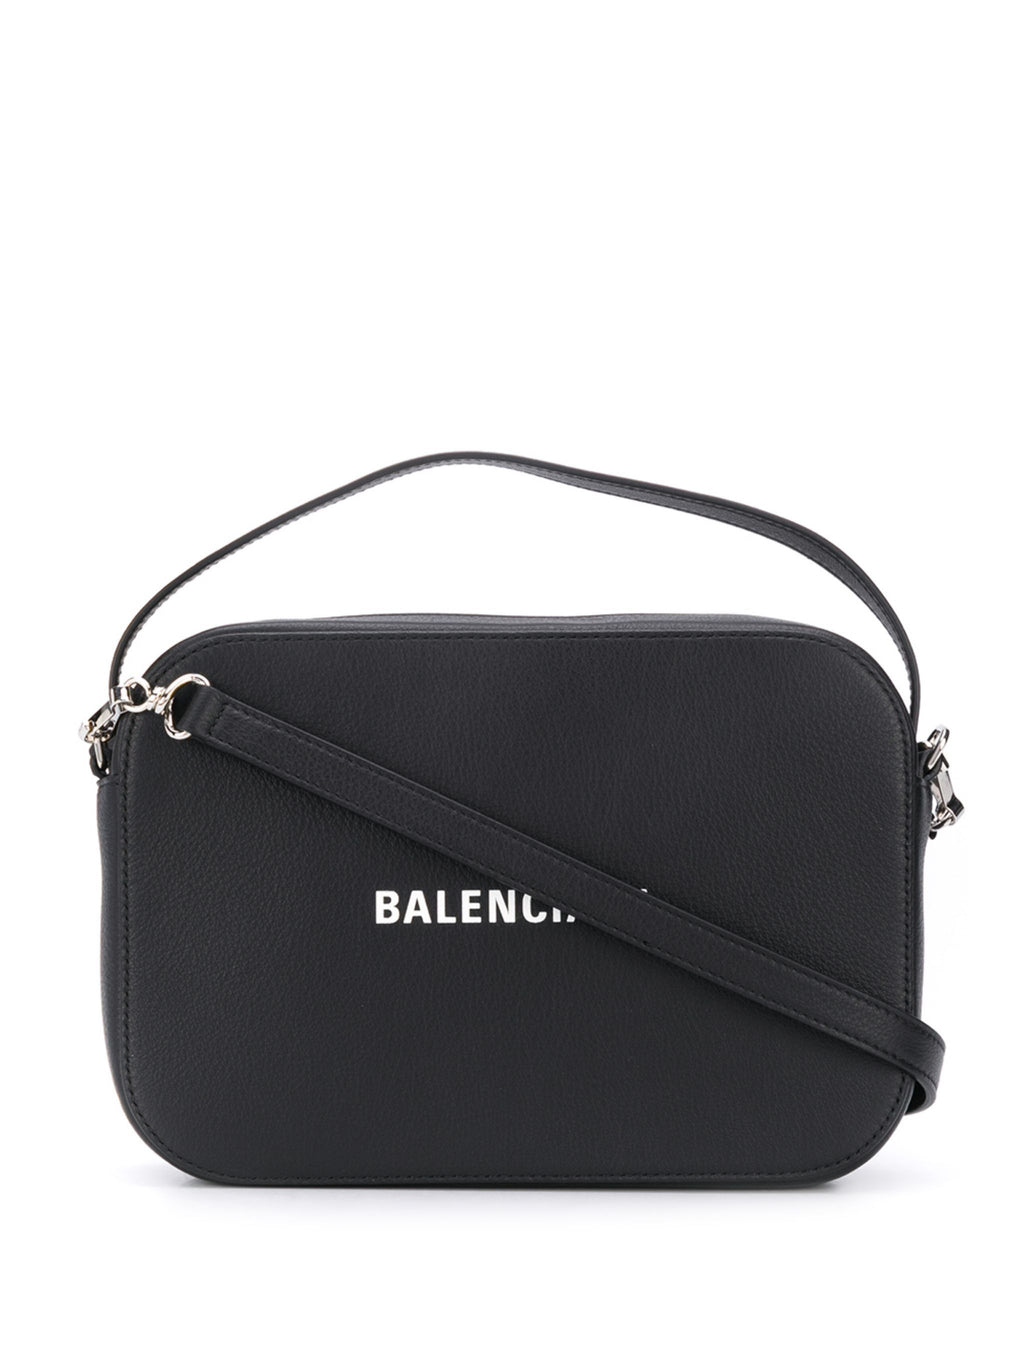 "BALENCIAGA ""S"" logo camera bag black"